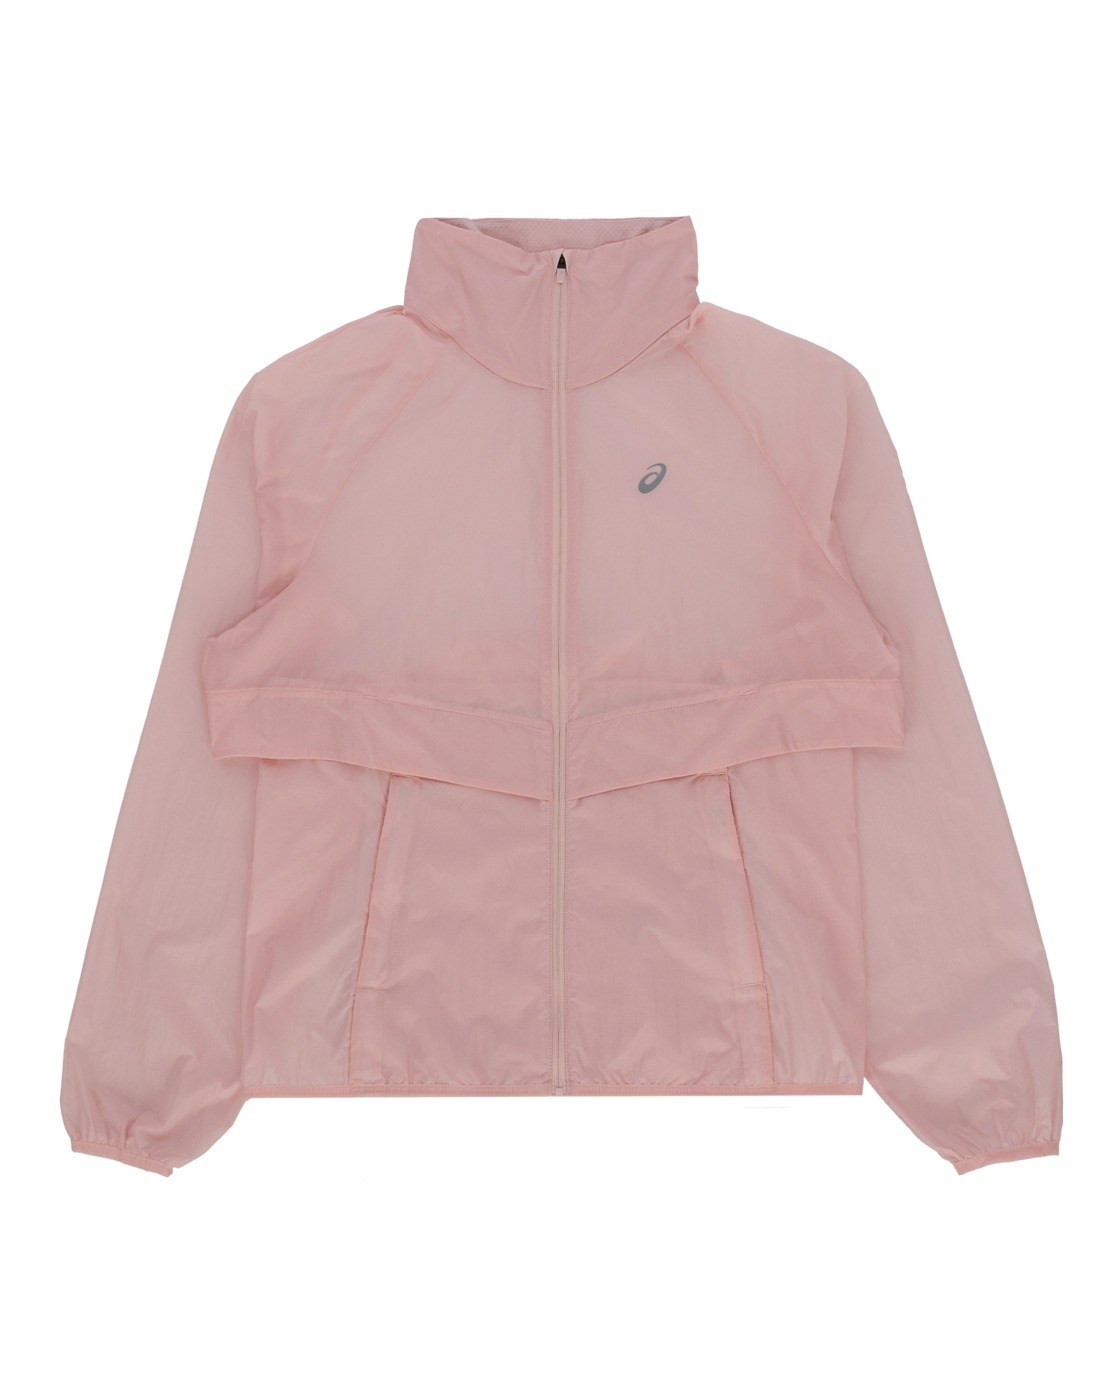 Asics New Strong Jacket Ginger Peach